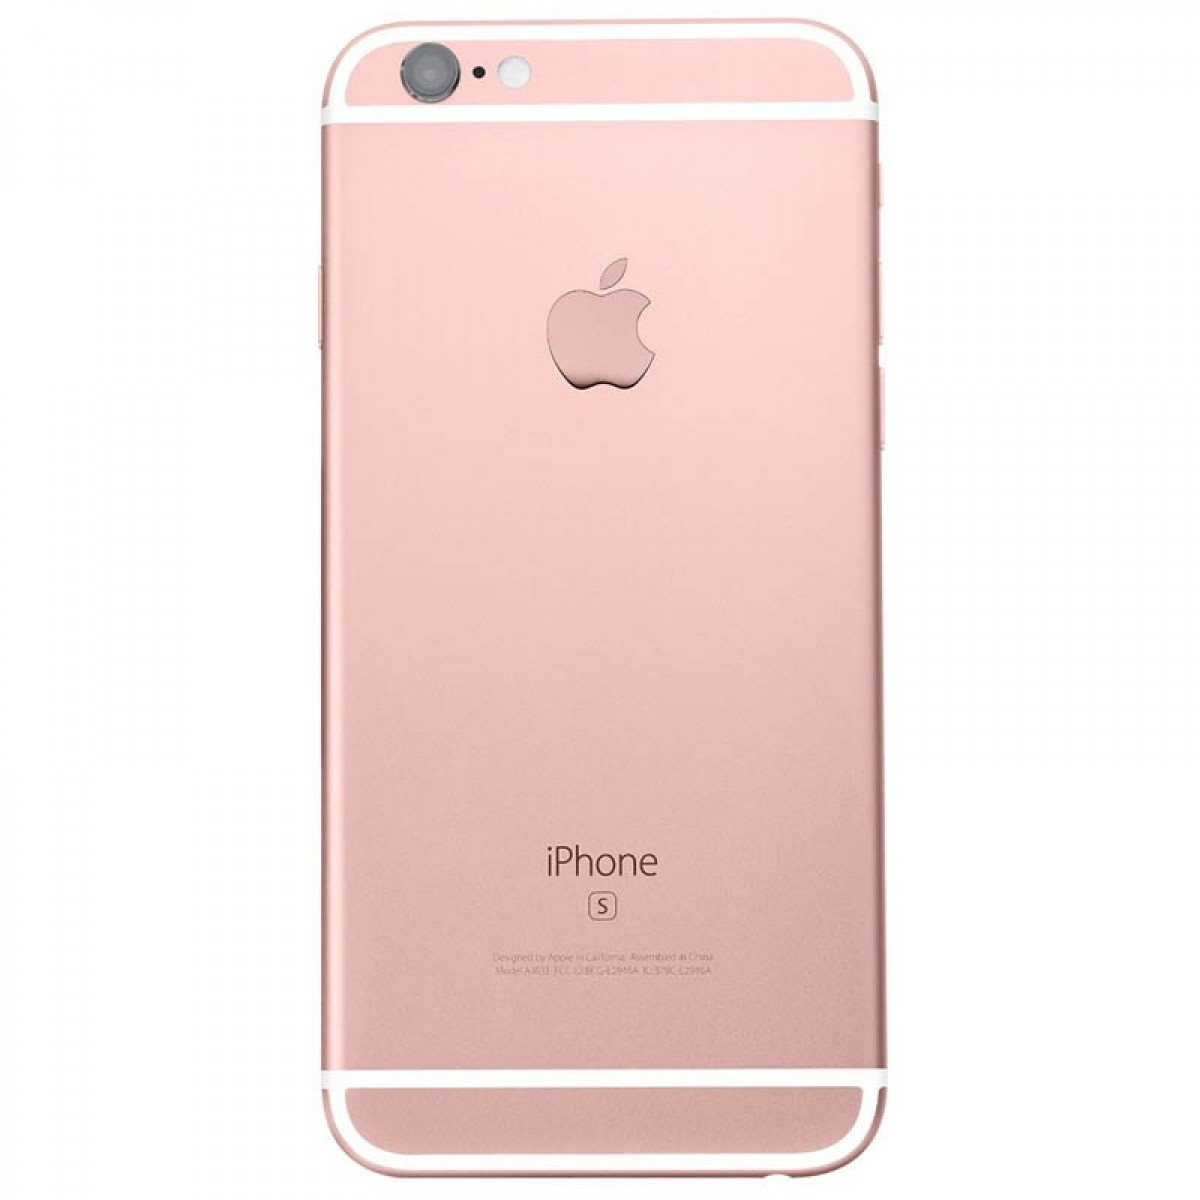 Apple Iphone 6s 128gb Rose Gold All Mobile Phones Be The First To Review This Product